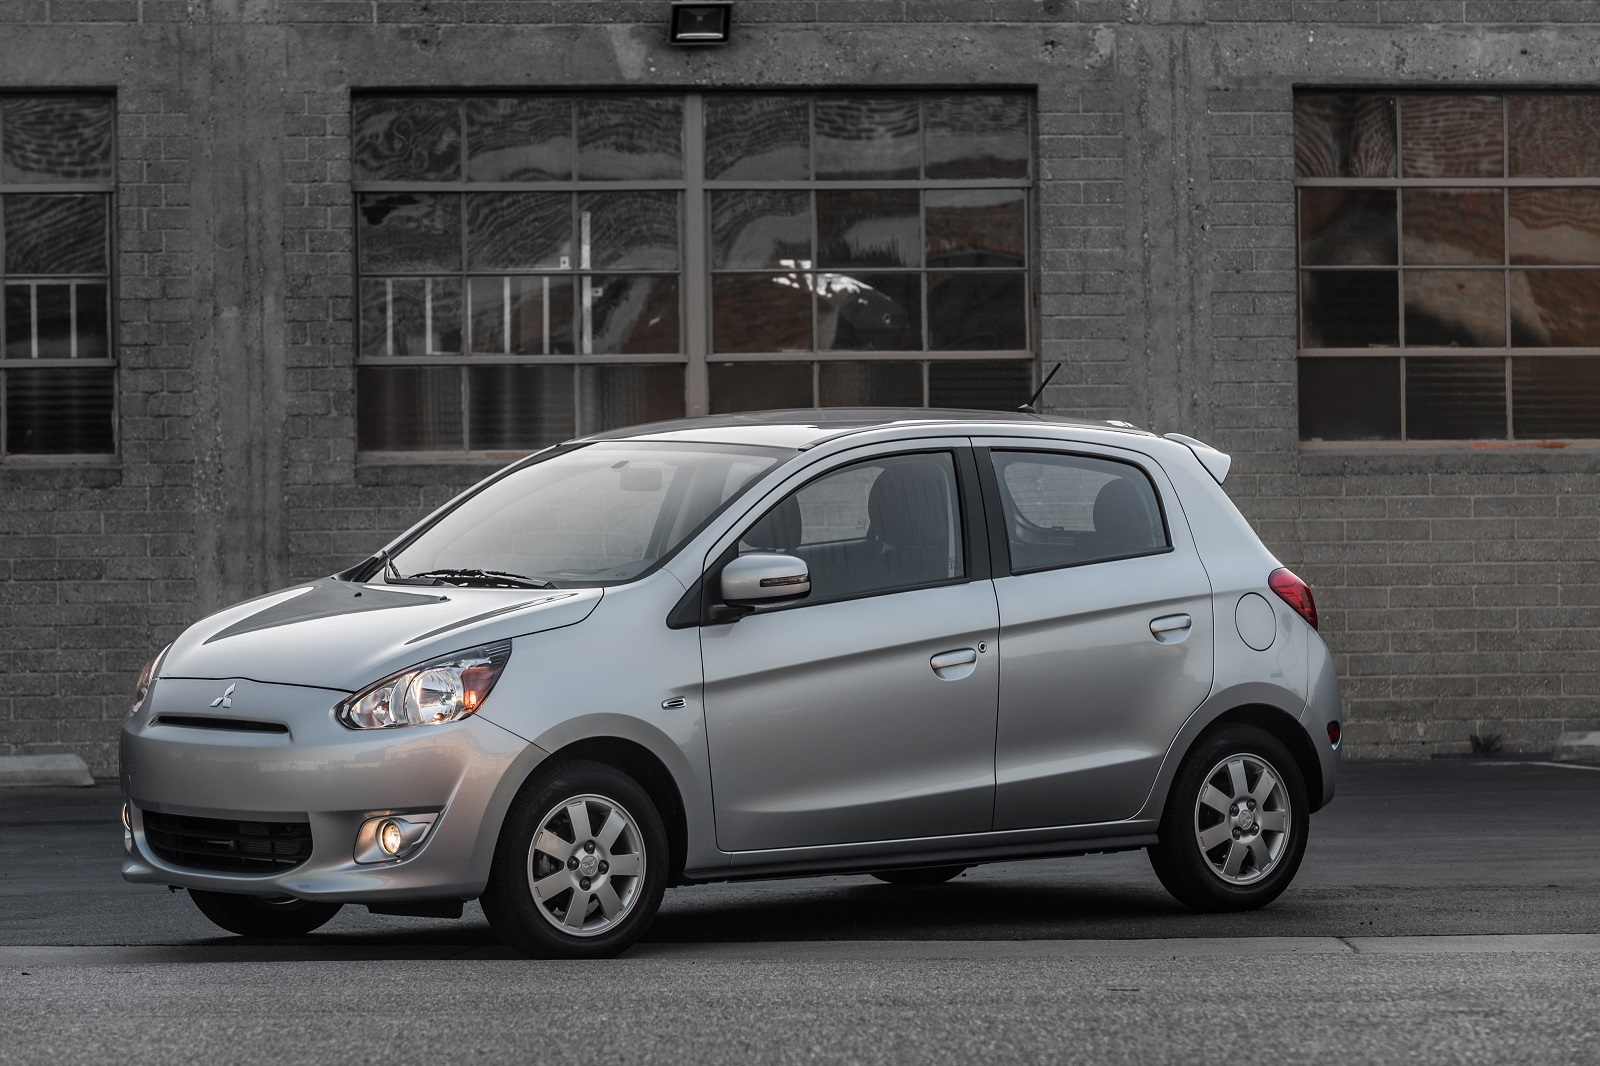 Mitsubishi Mirage The Unexpected Small Car Success